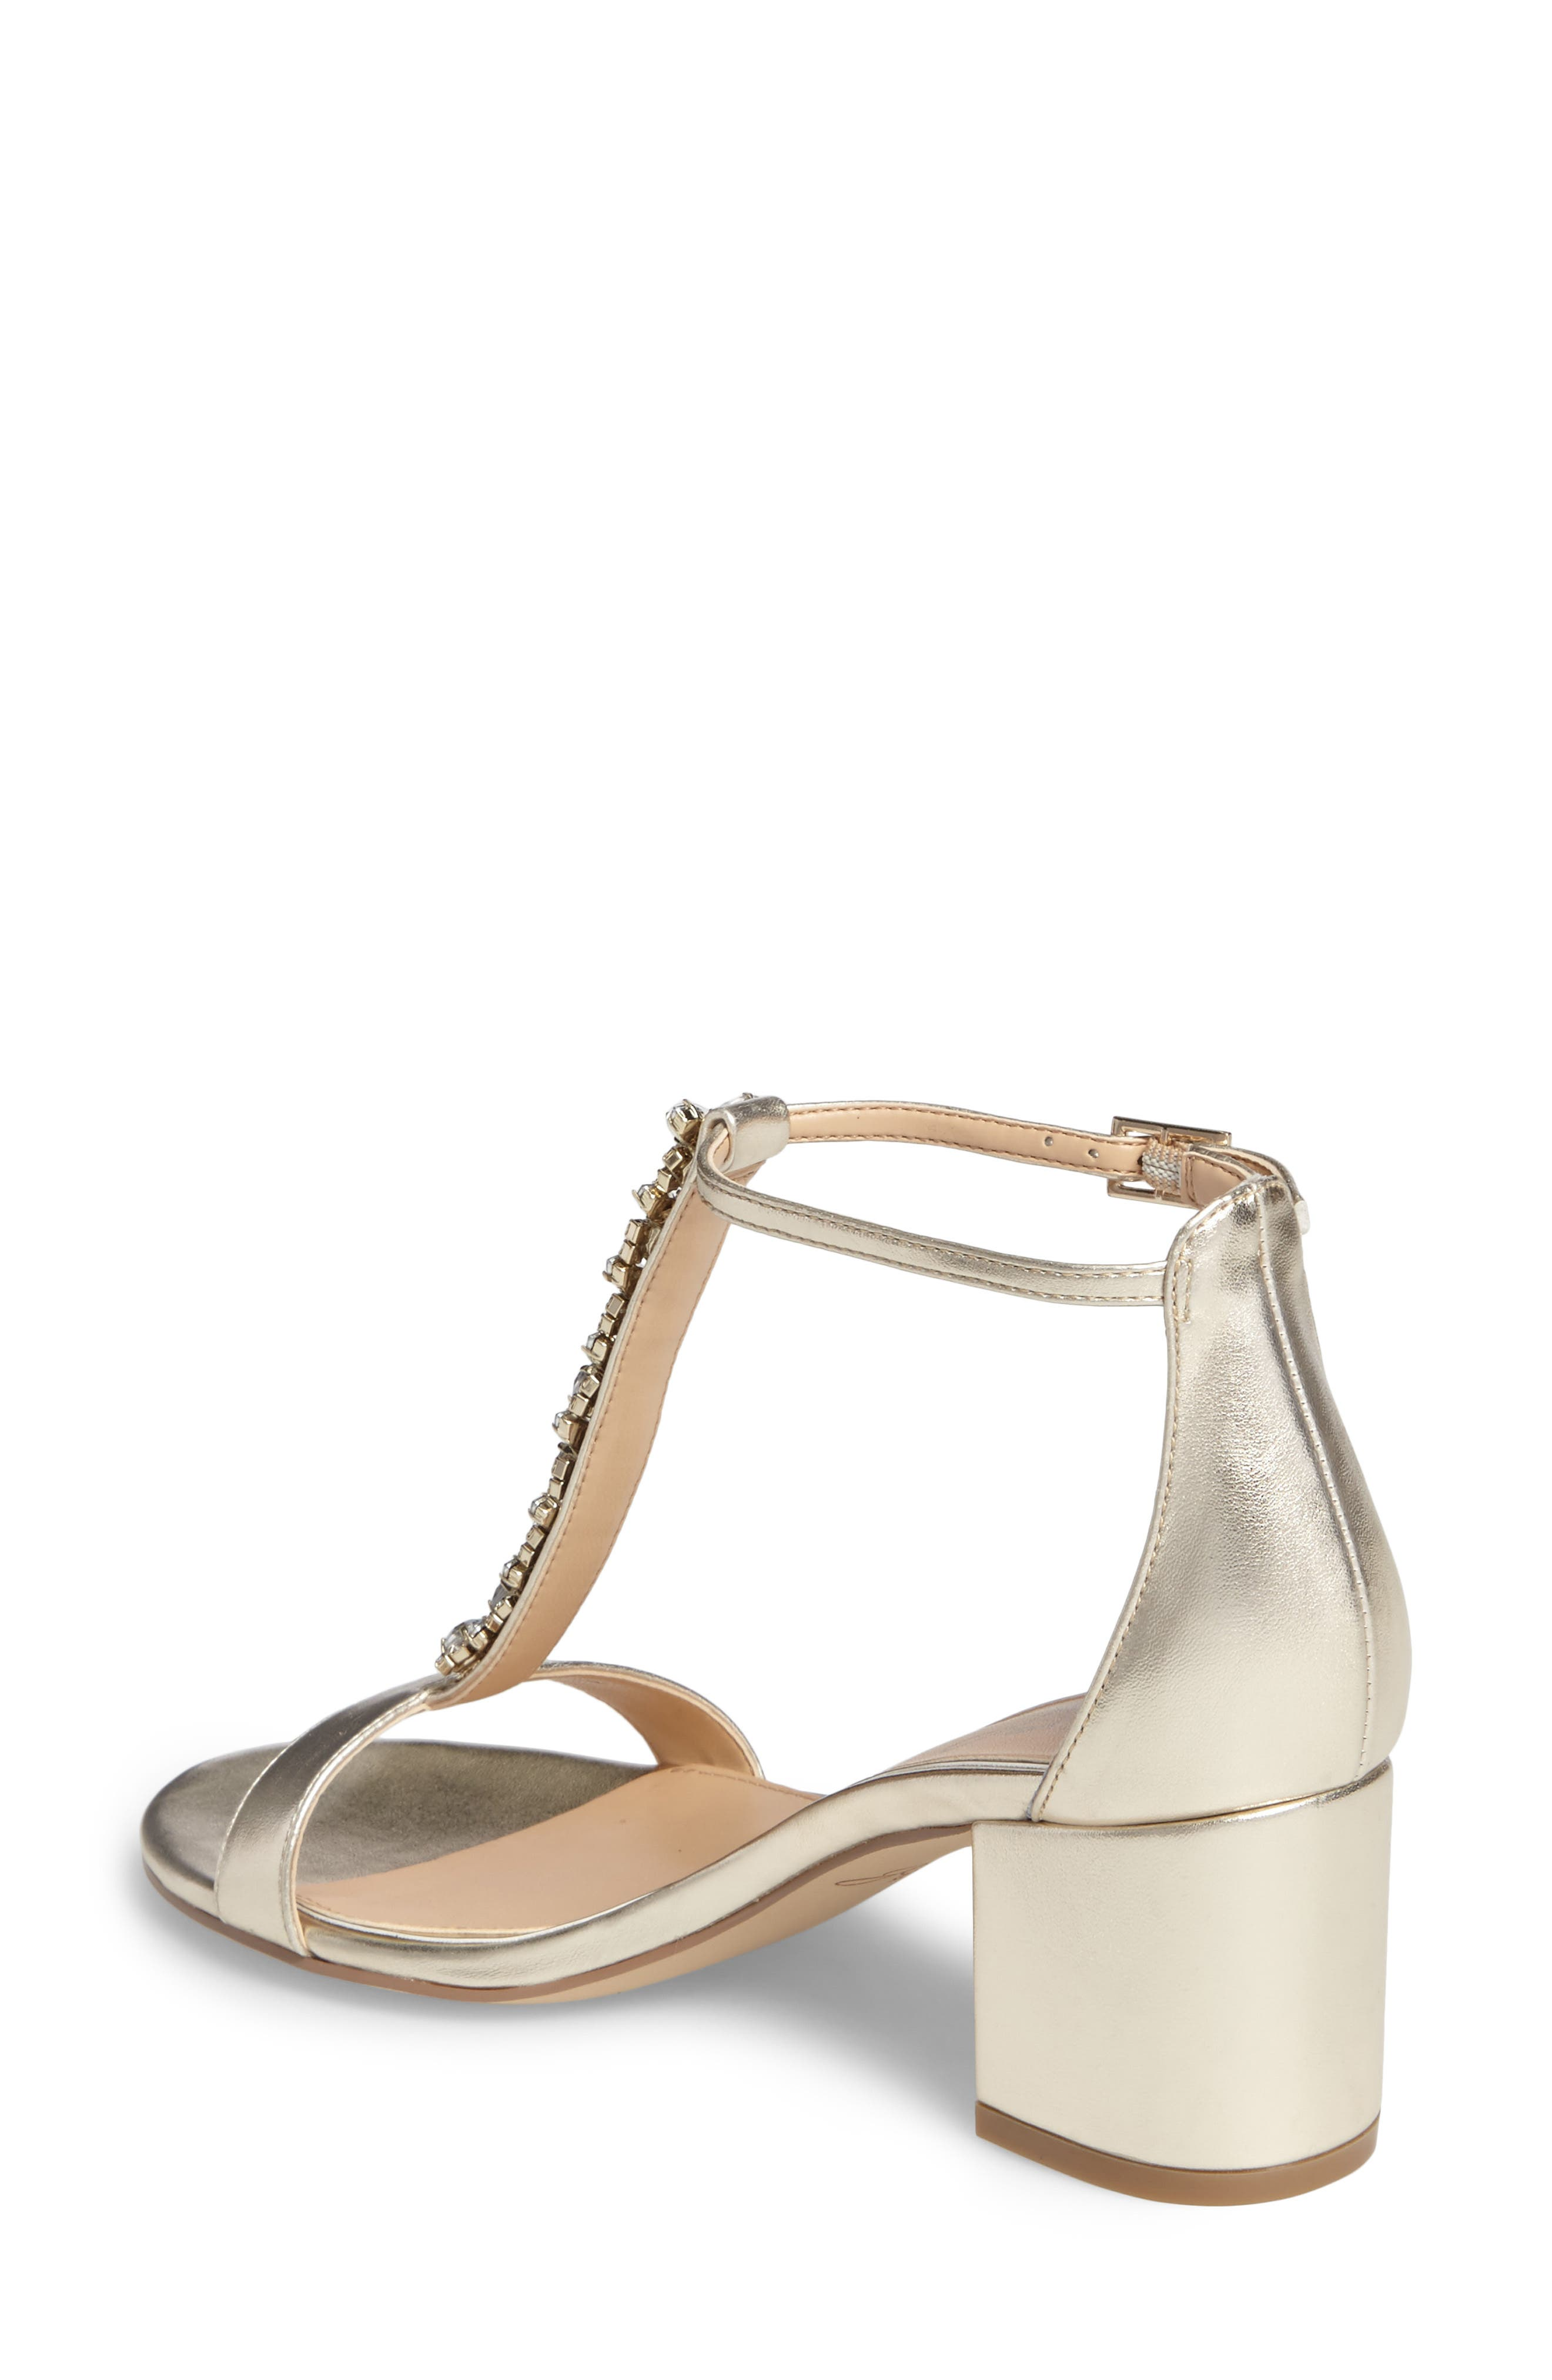 Lindsey Embellished T-Strap Sandal,                             Alternate thumbnail 2, color,                             GOLD LEATHER